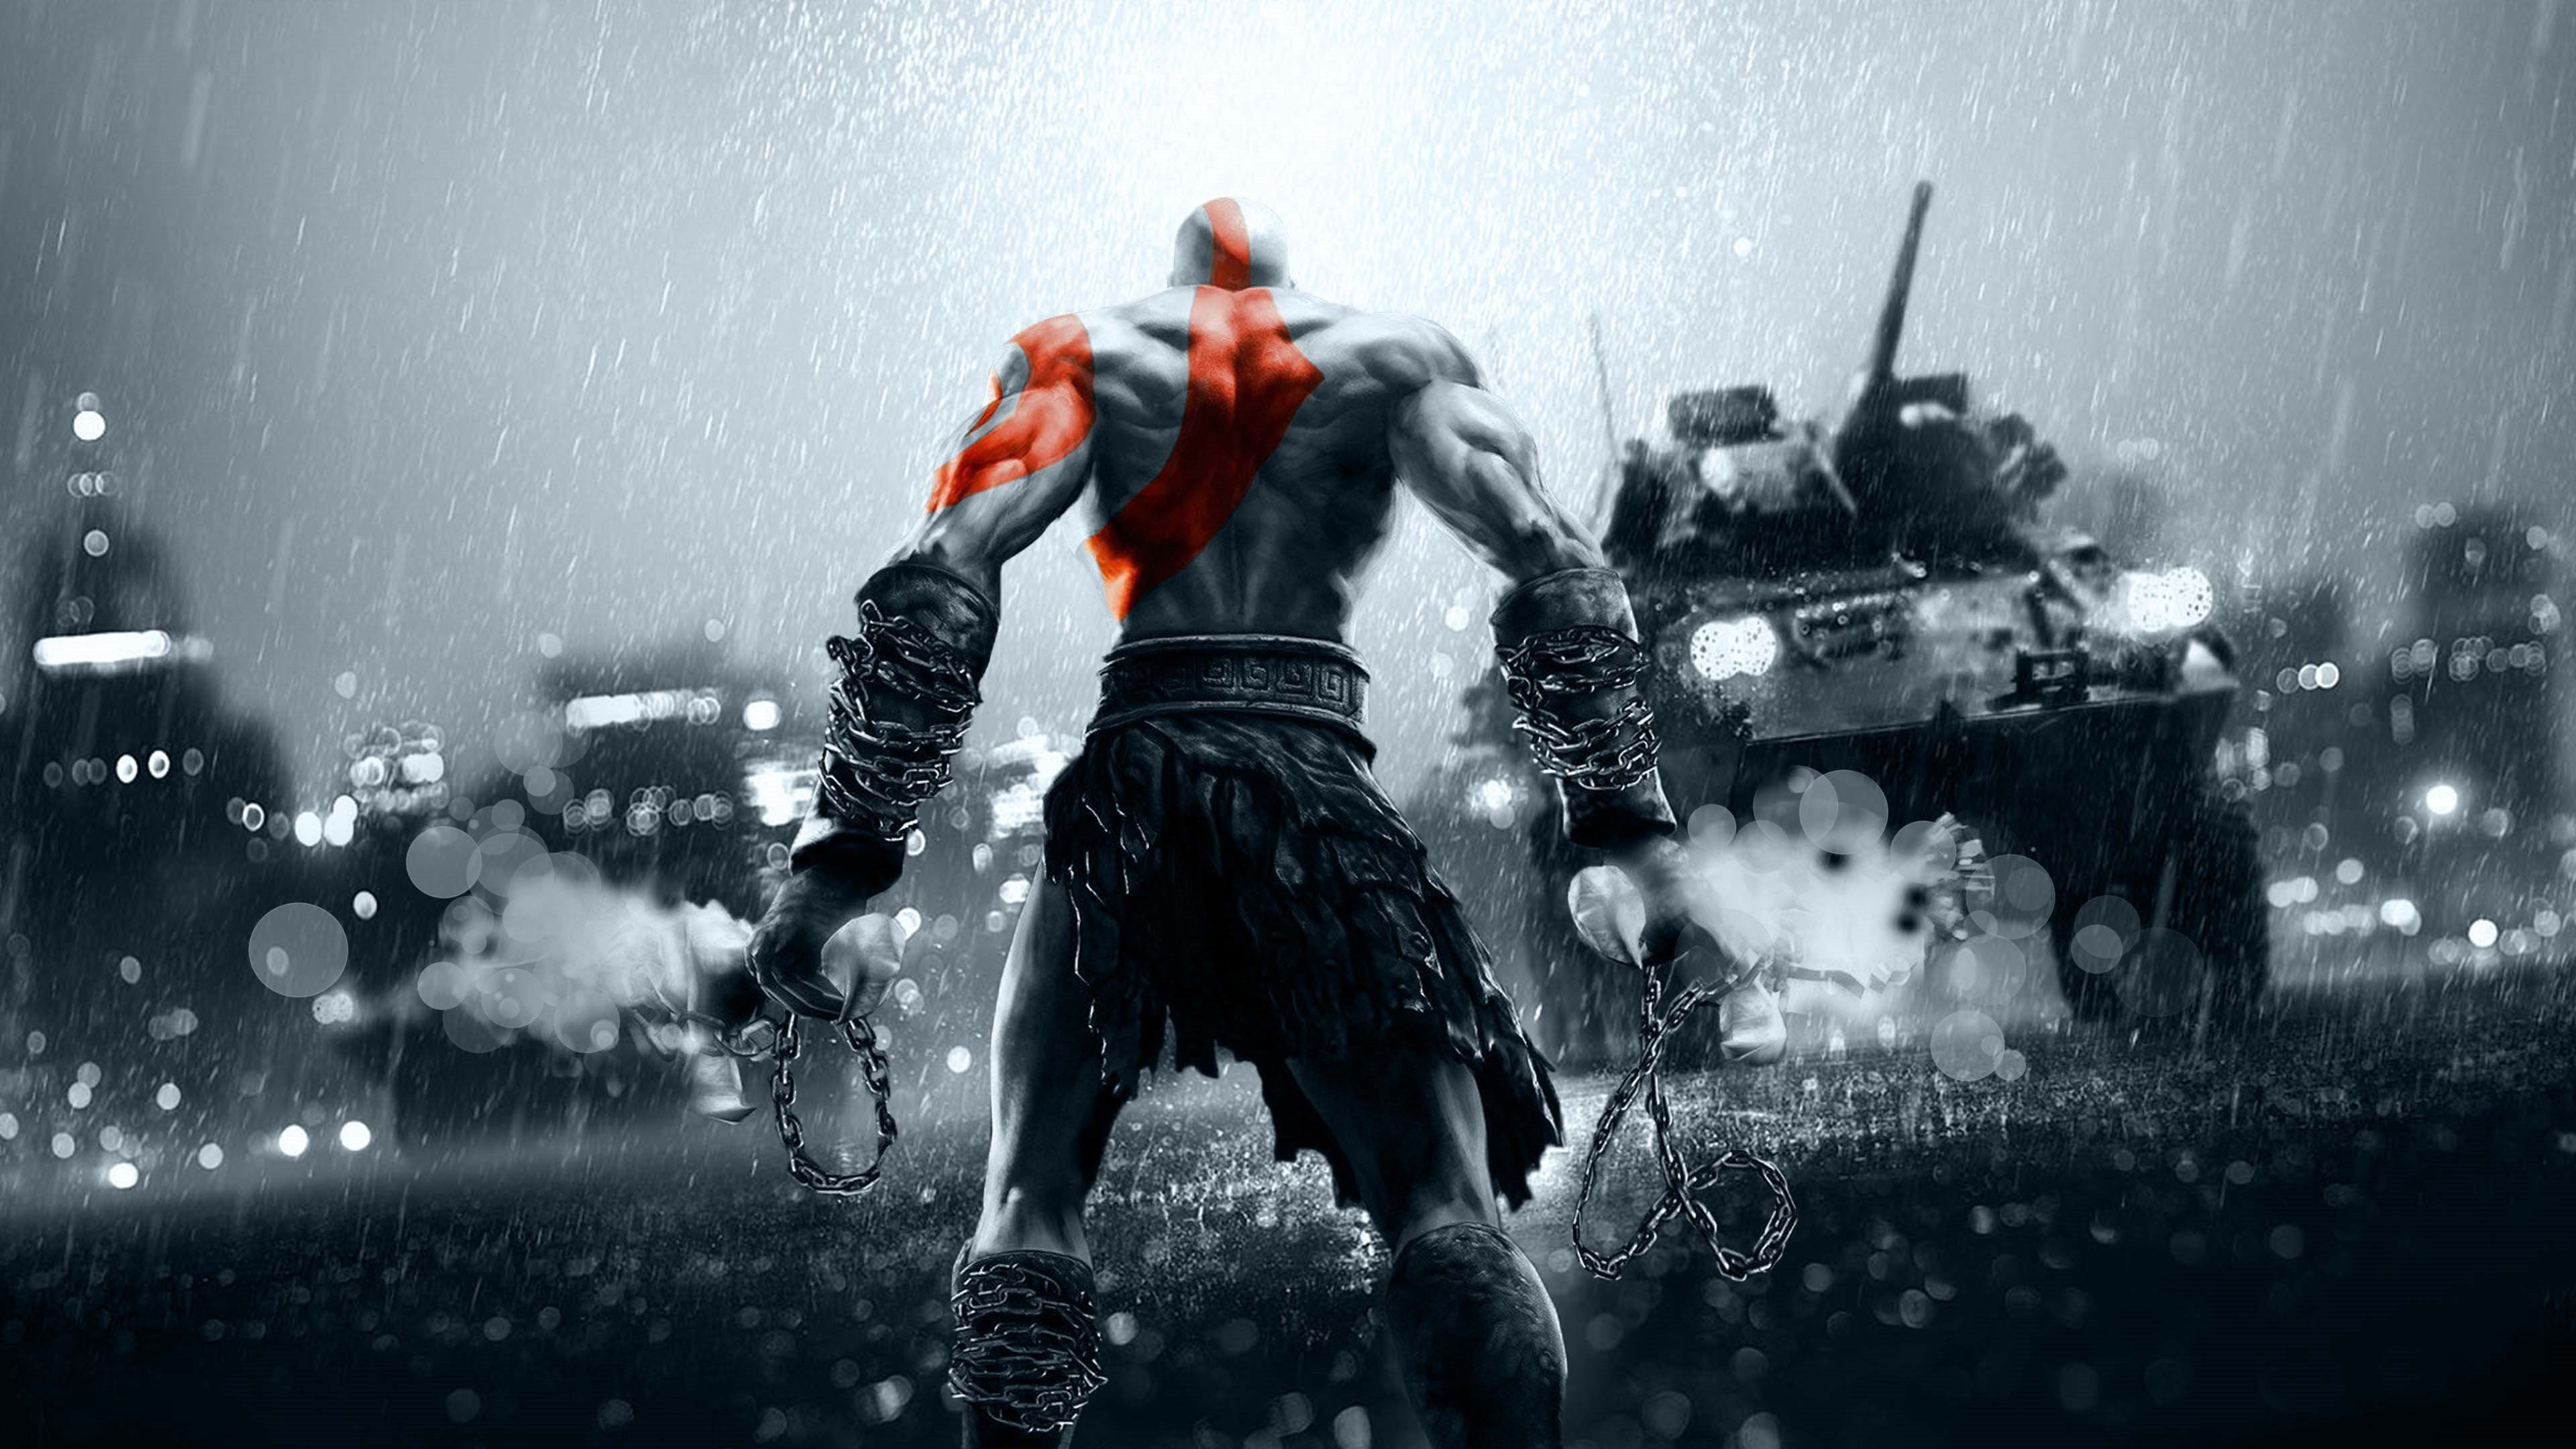 Gaming Wallpaper In 2020 God Of War Pc Games Wallpapers 4k Gaming Wallpaper